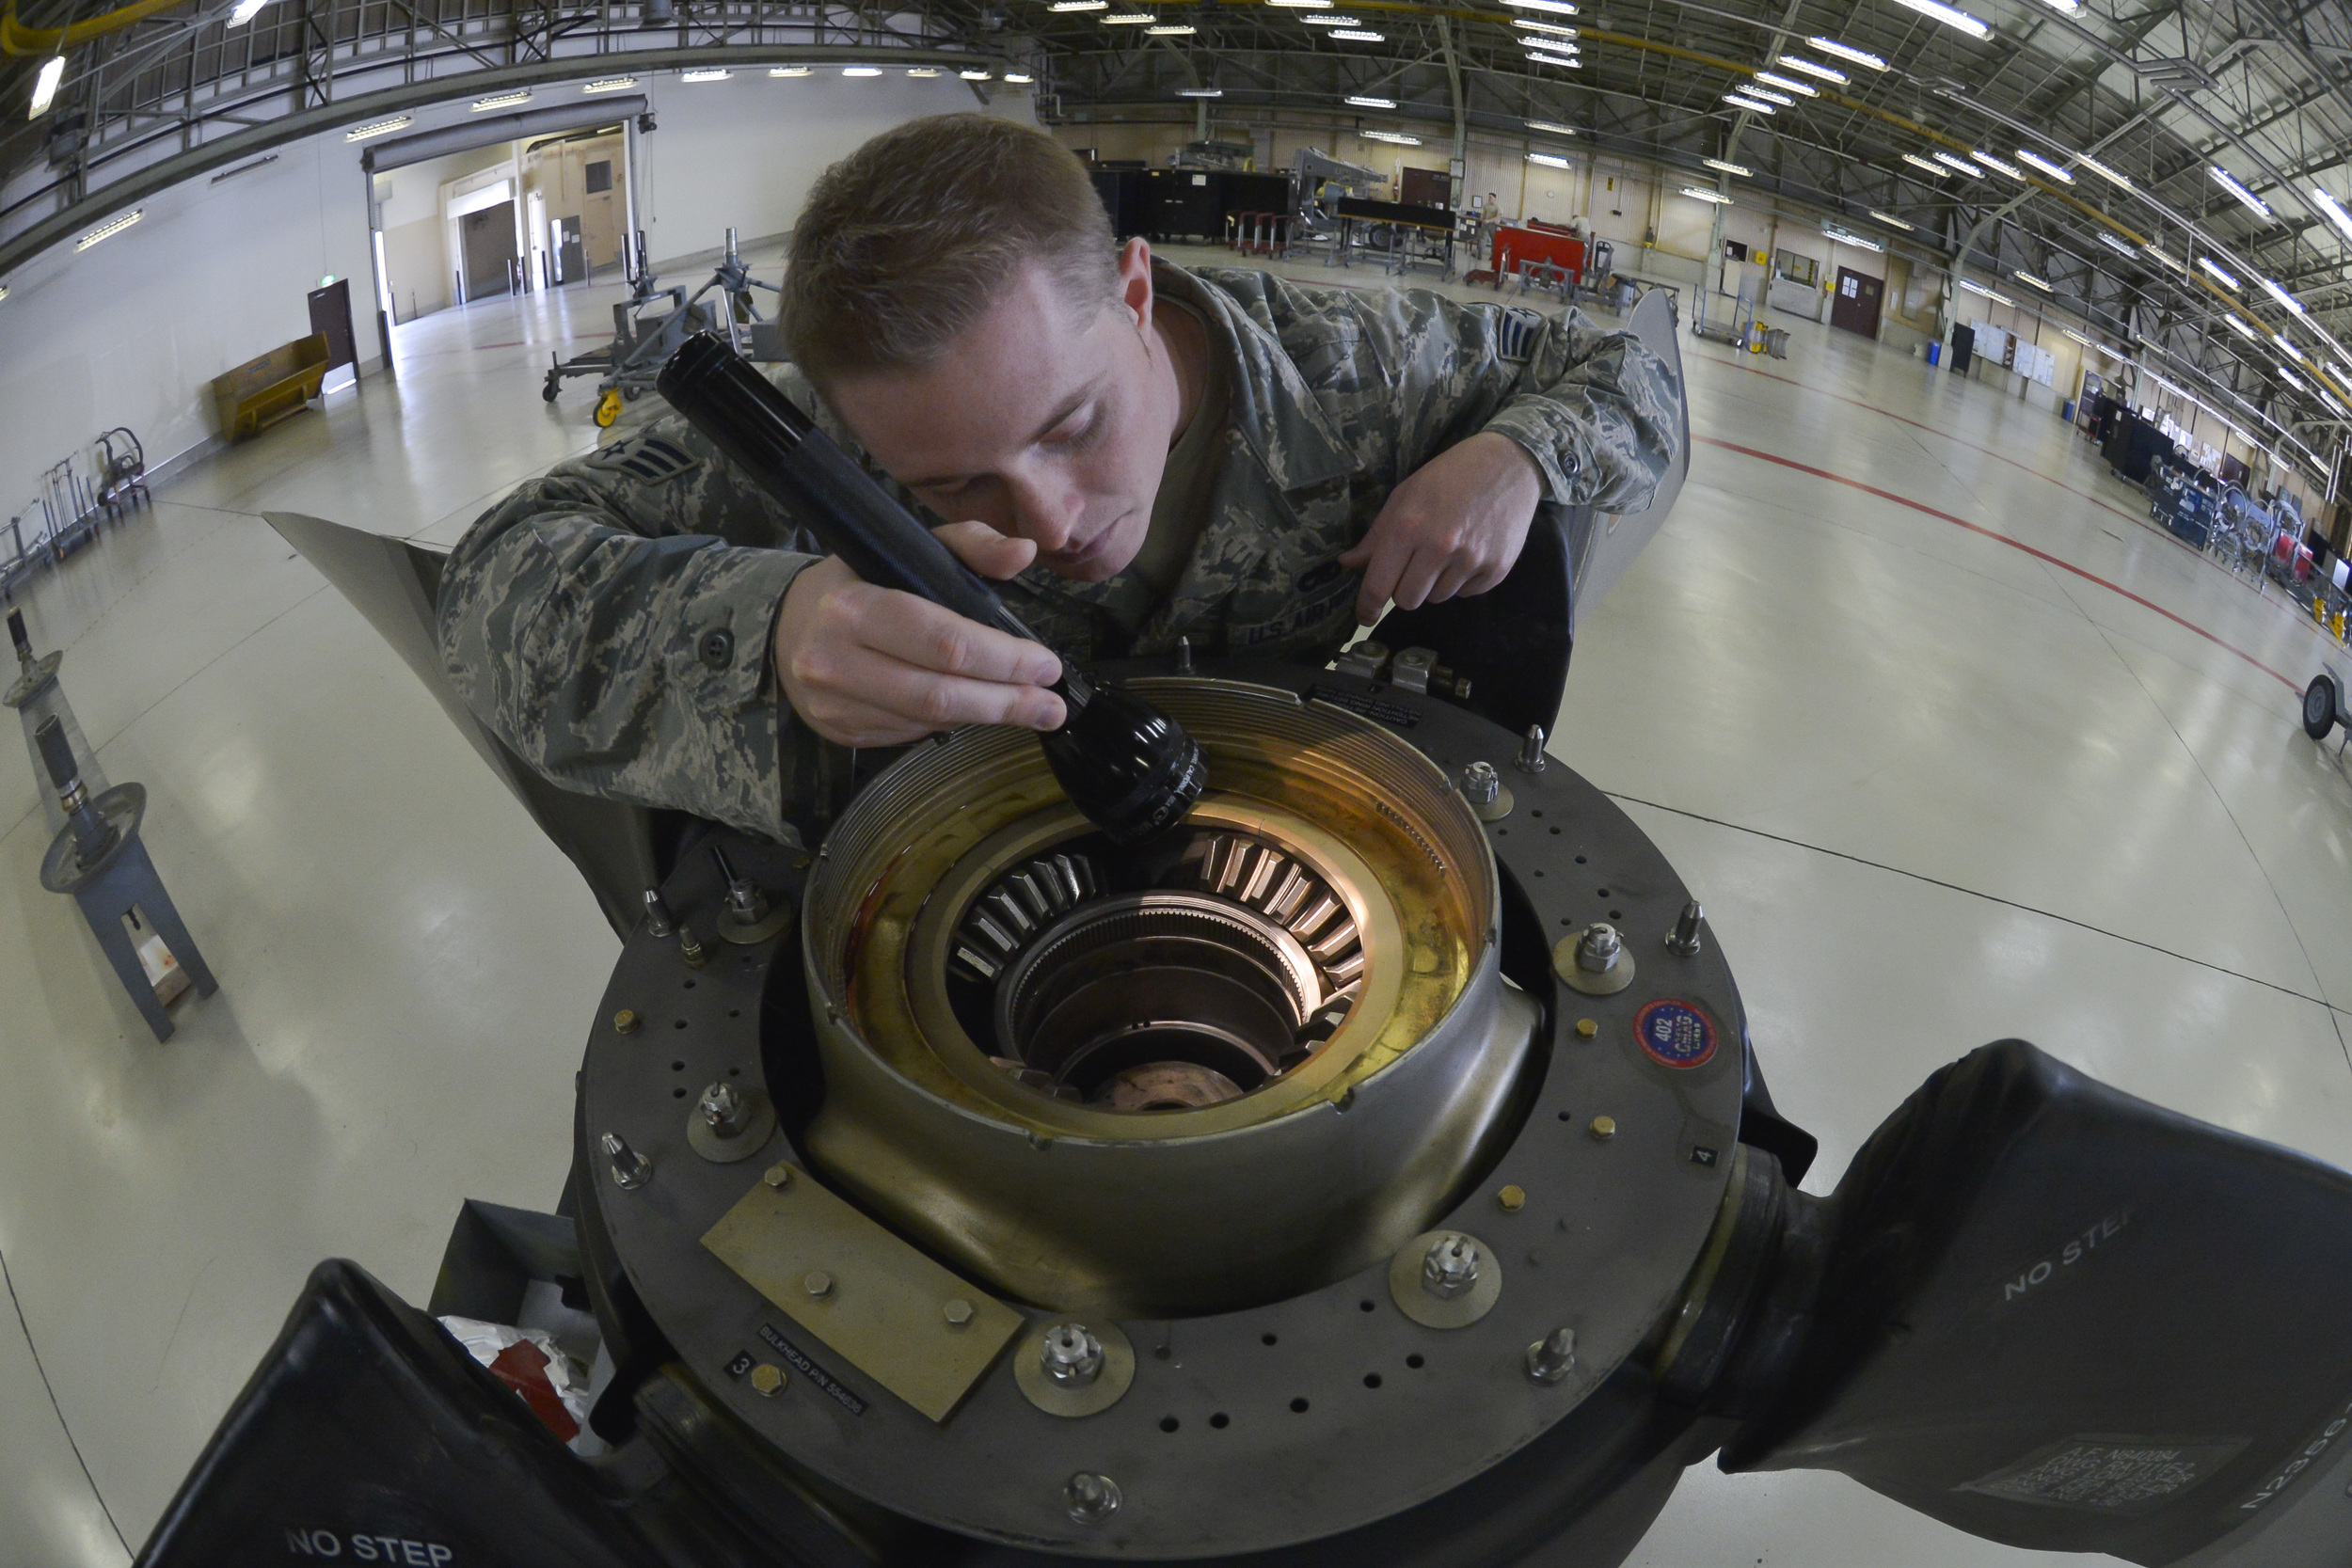 Senior Airman Colton Windsor, 374th Maintenance Squadron propulsion flight aerospace propulsion journeyman, inspects the blade teeth of the propeller at Yokota Air Base, Japan, Sept. 23, 2015. In addition to providing support for both Yokota and Kadena Air Base, the flight provides engine and propeller support for all active duty, guard and reserve C-130s tasked within their area of responsibility. (U.S. Air Force photo by Senior Airman David Owsianka/Released)